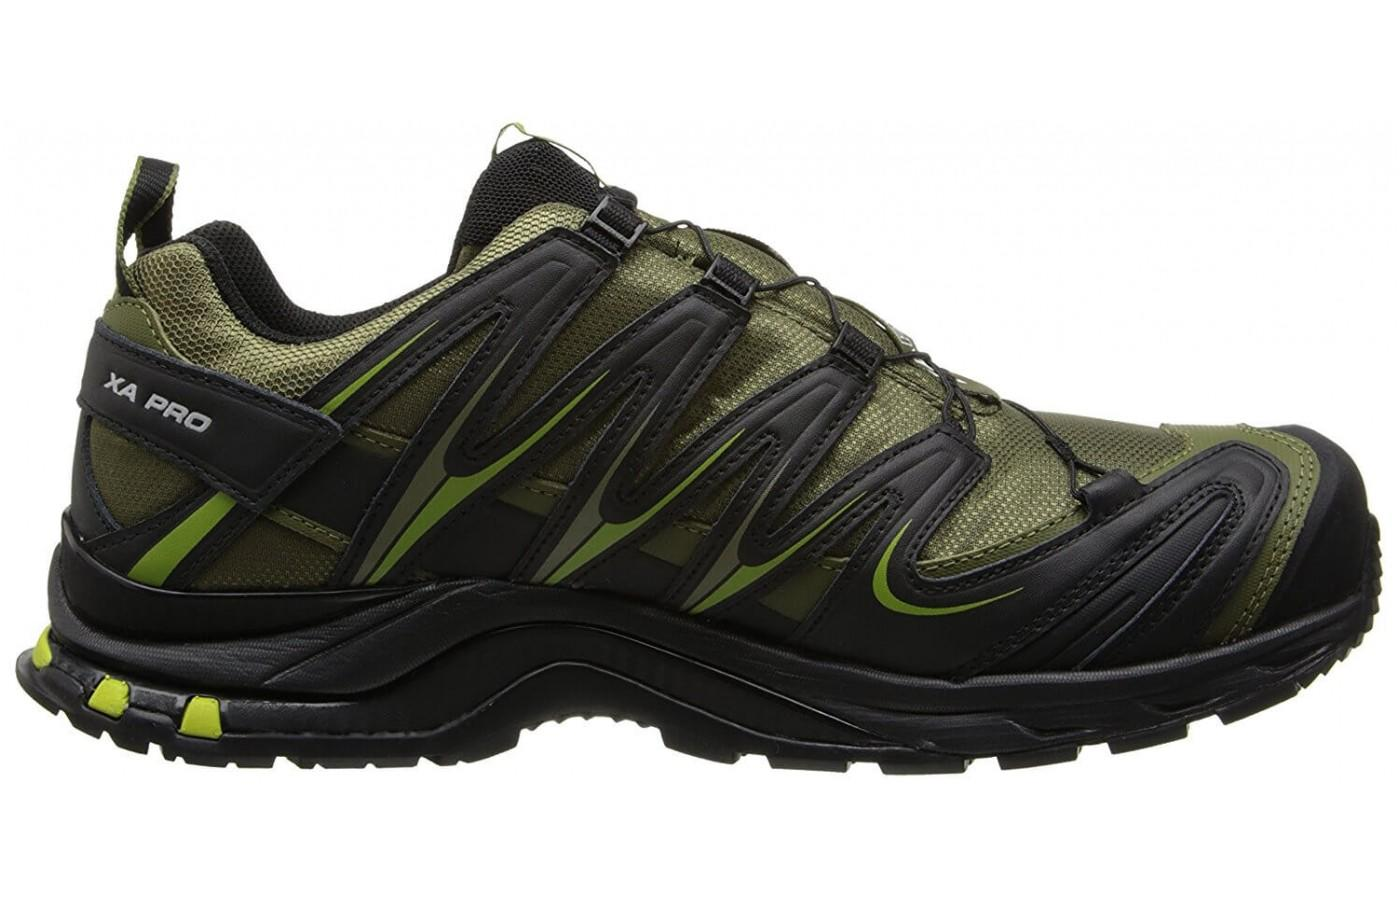 the Salomon XA Pro 3D CS WP is covered with SensiFit overlays for structure and added stability